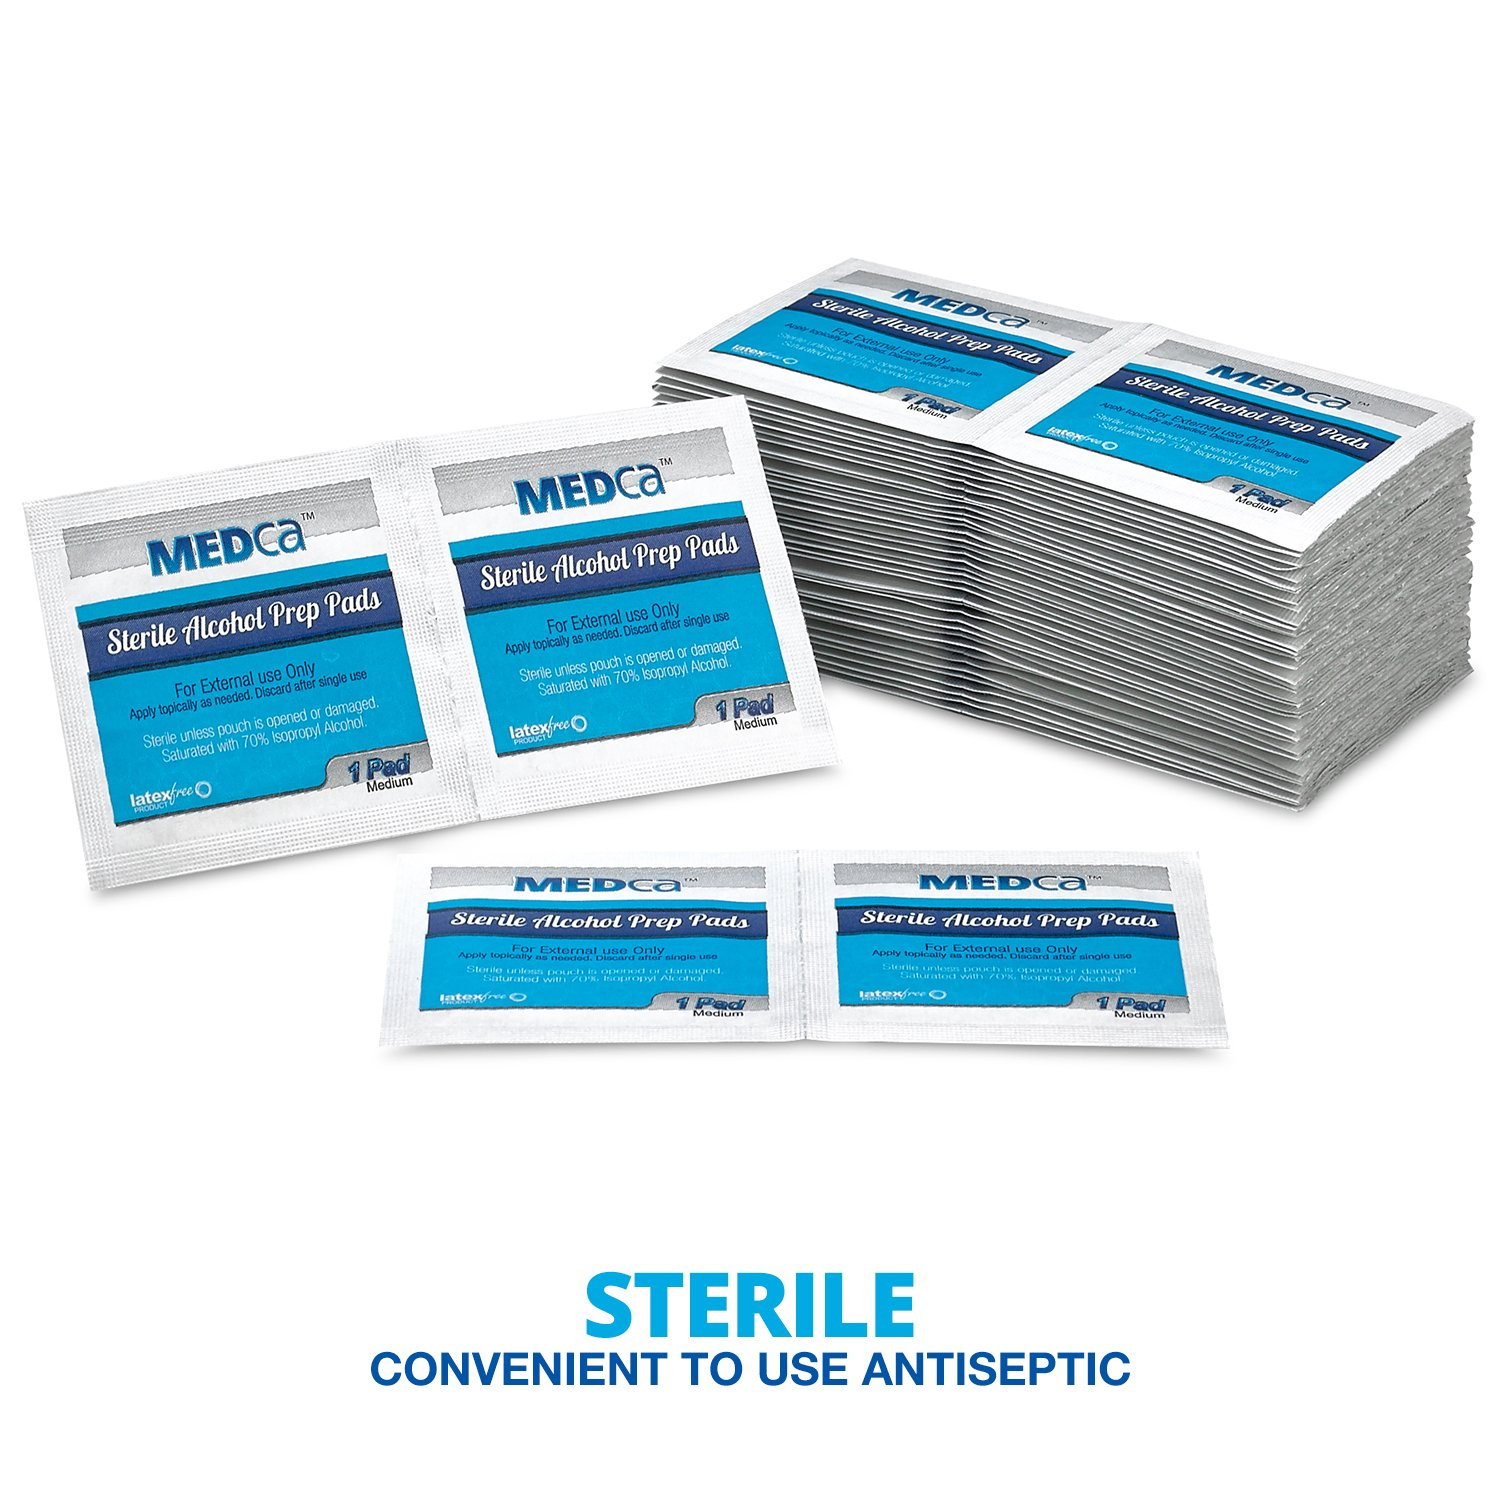 Alcohol Wipes - Sterile Alcohol Prep Pads, Antiseptic Sanitizer Swab Pads, 2-Ply Cotton 70% Isopropyl Individually Wrapped Box of 500 by MEDca (Image #2)